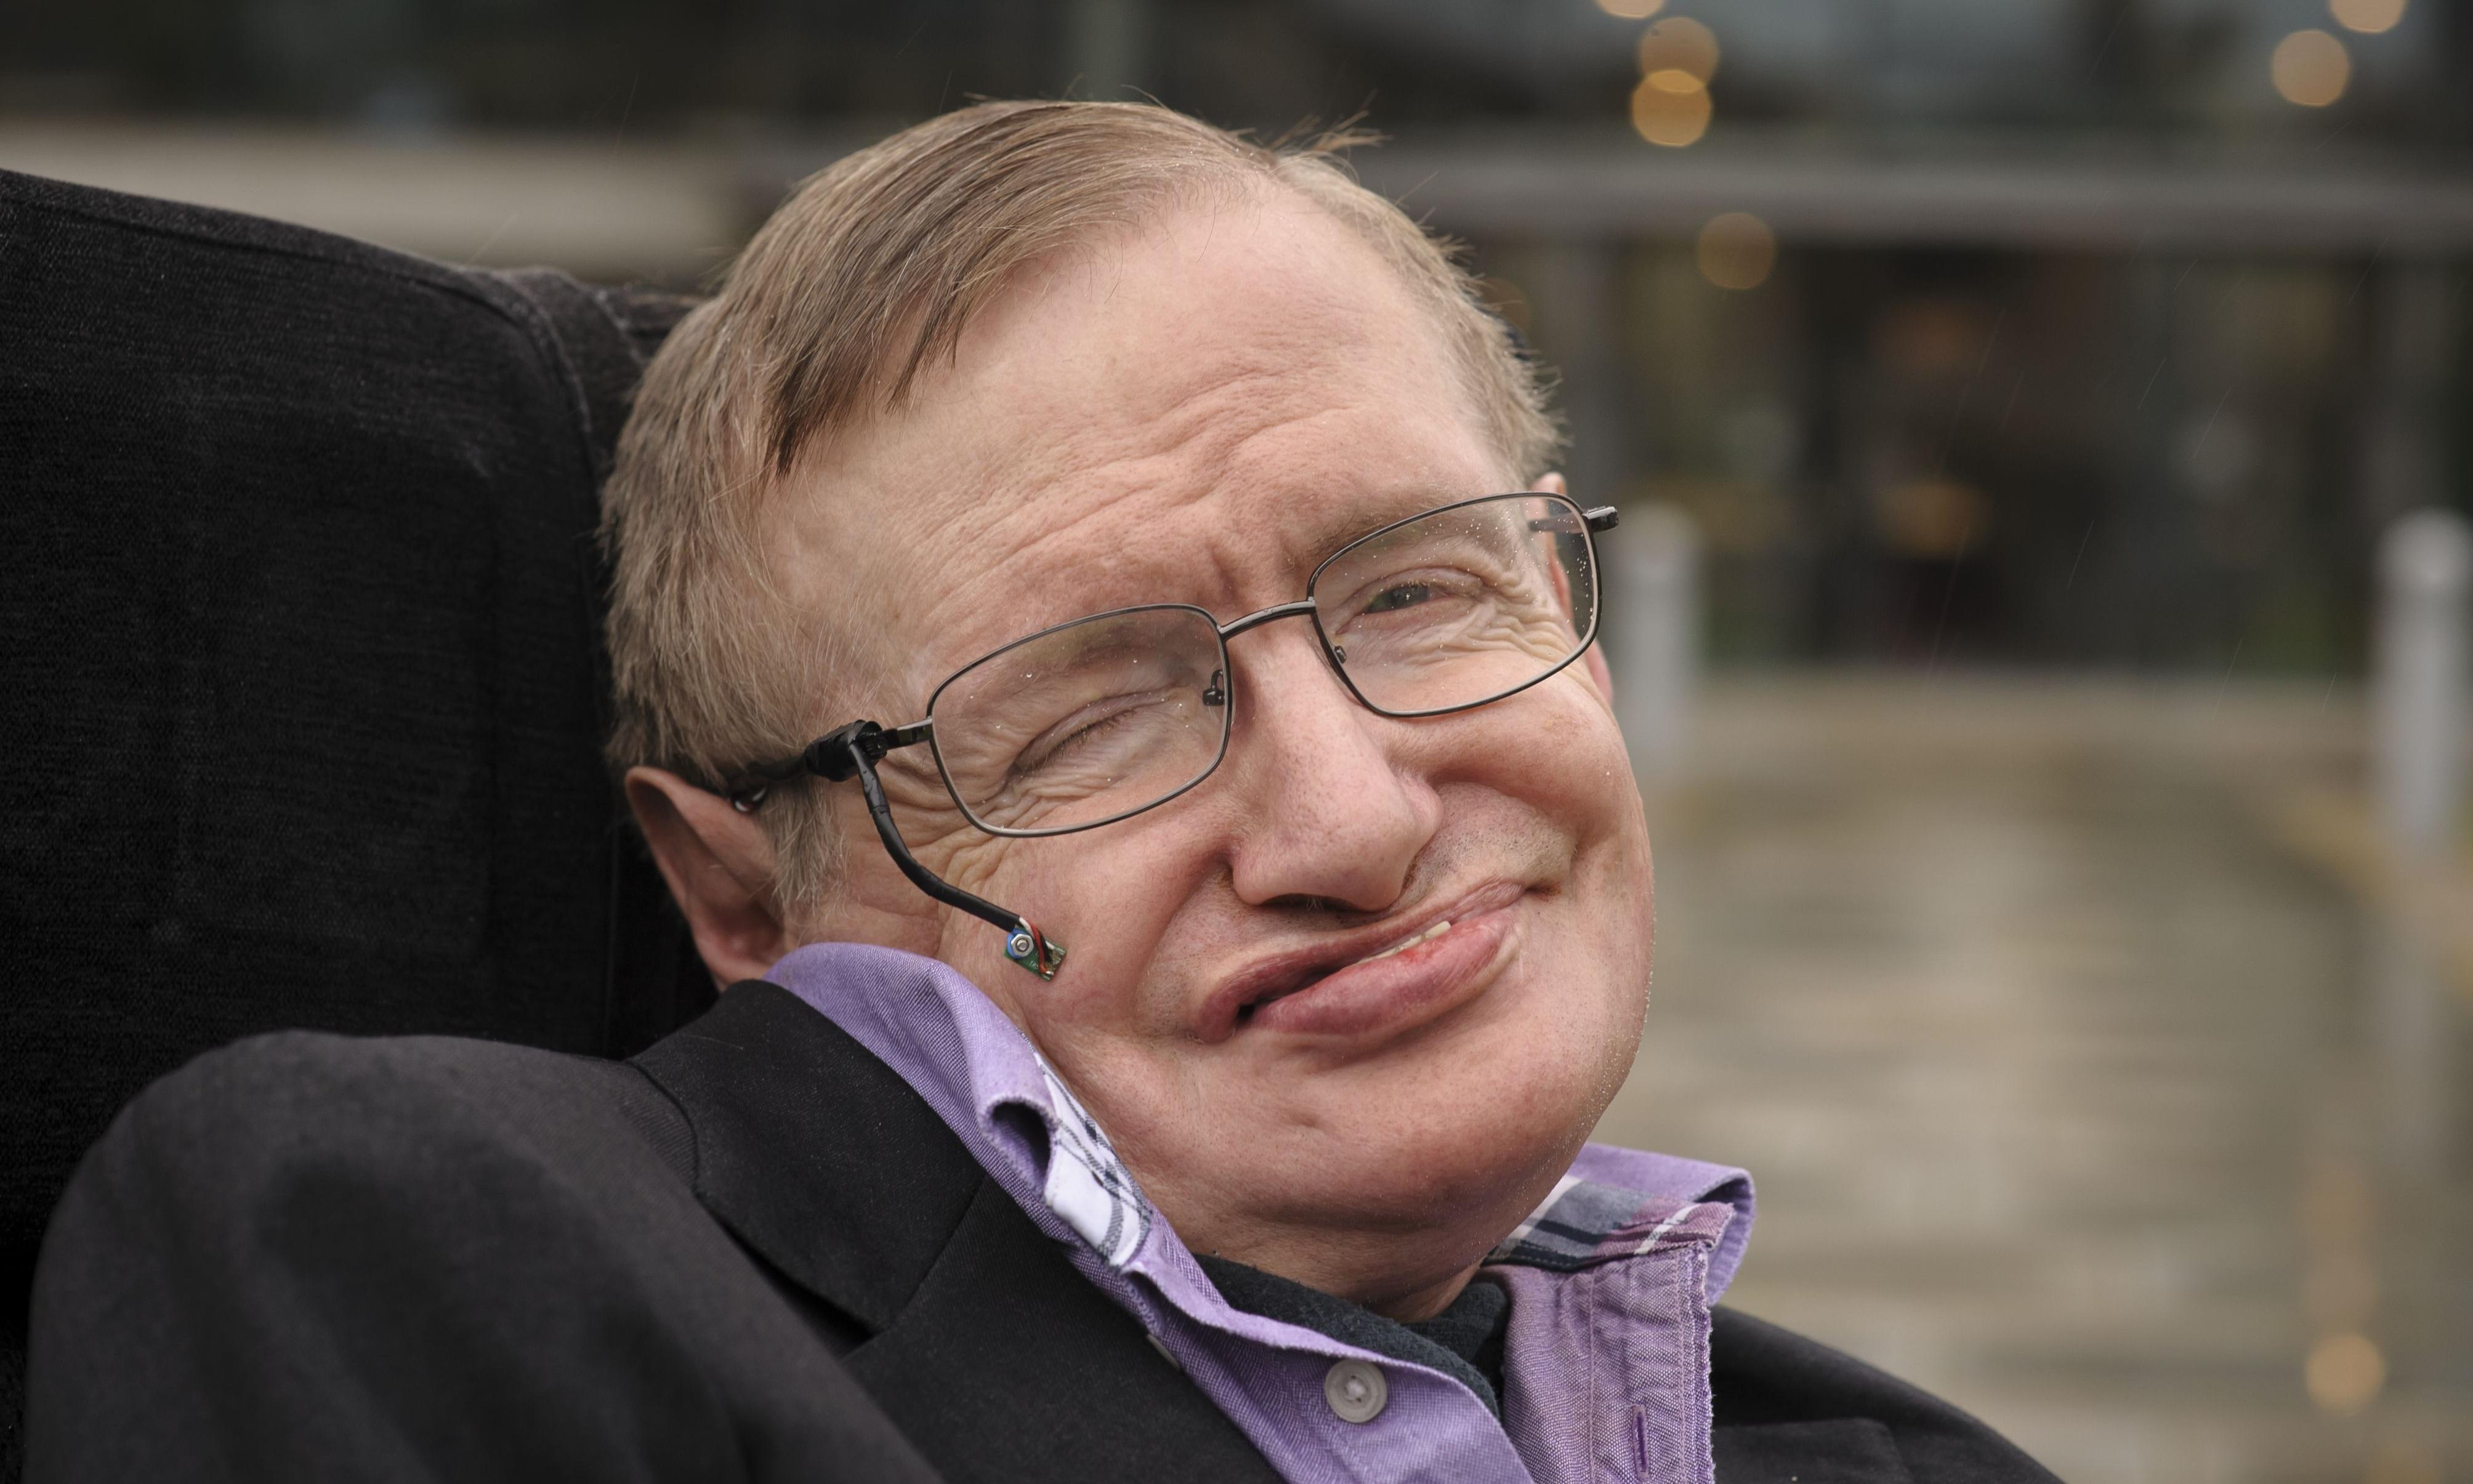 Share your tributes and memories of Stephen Hawking